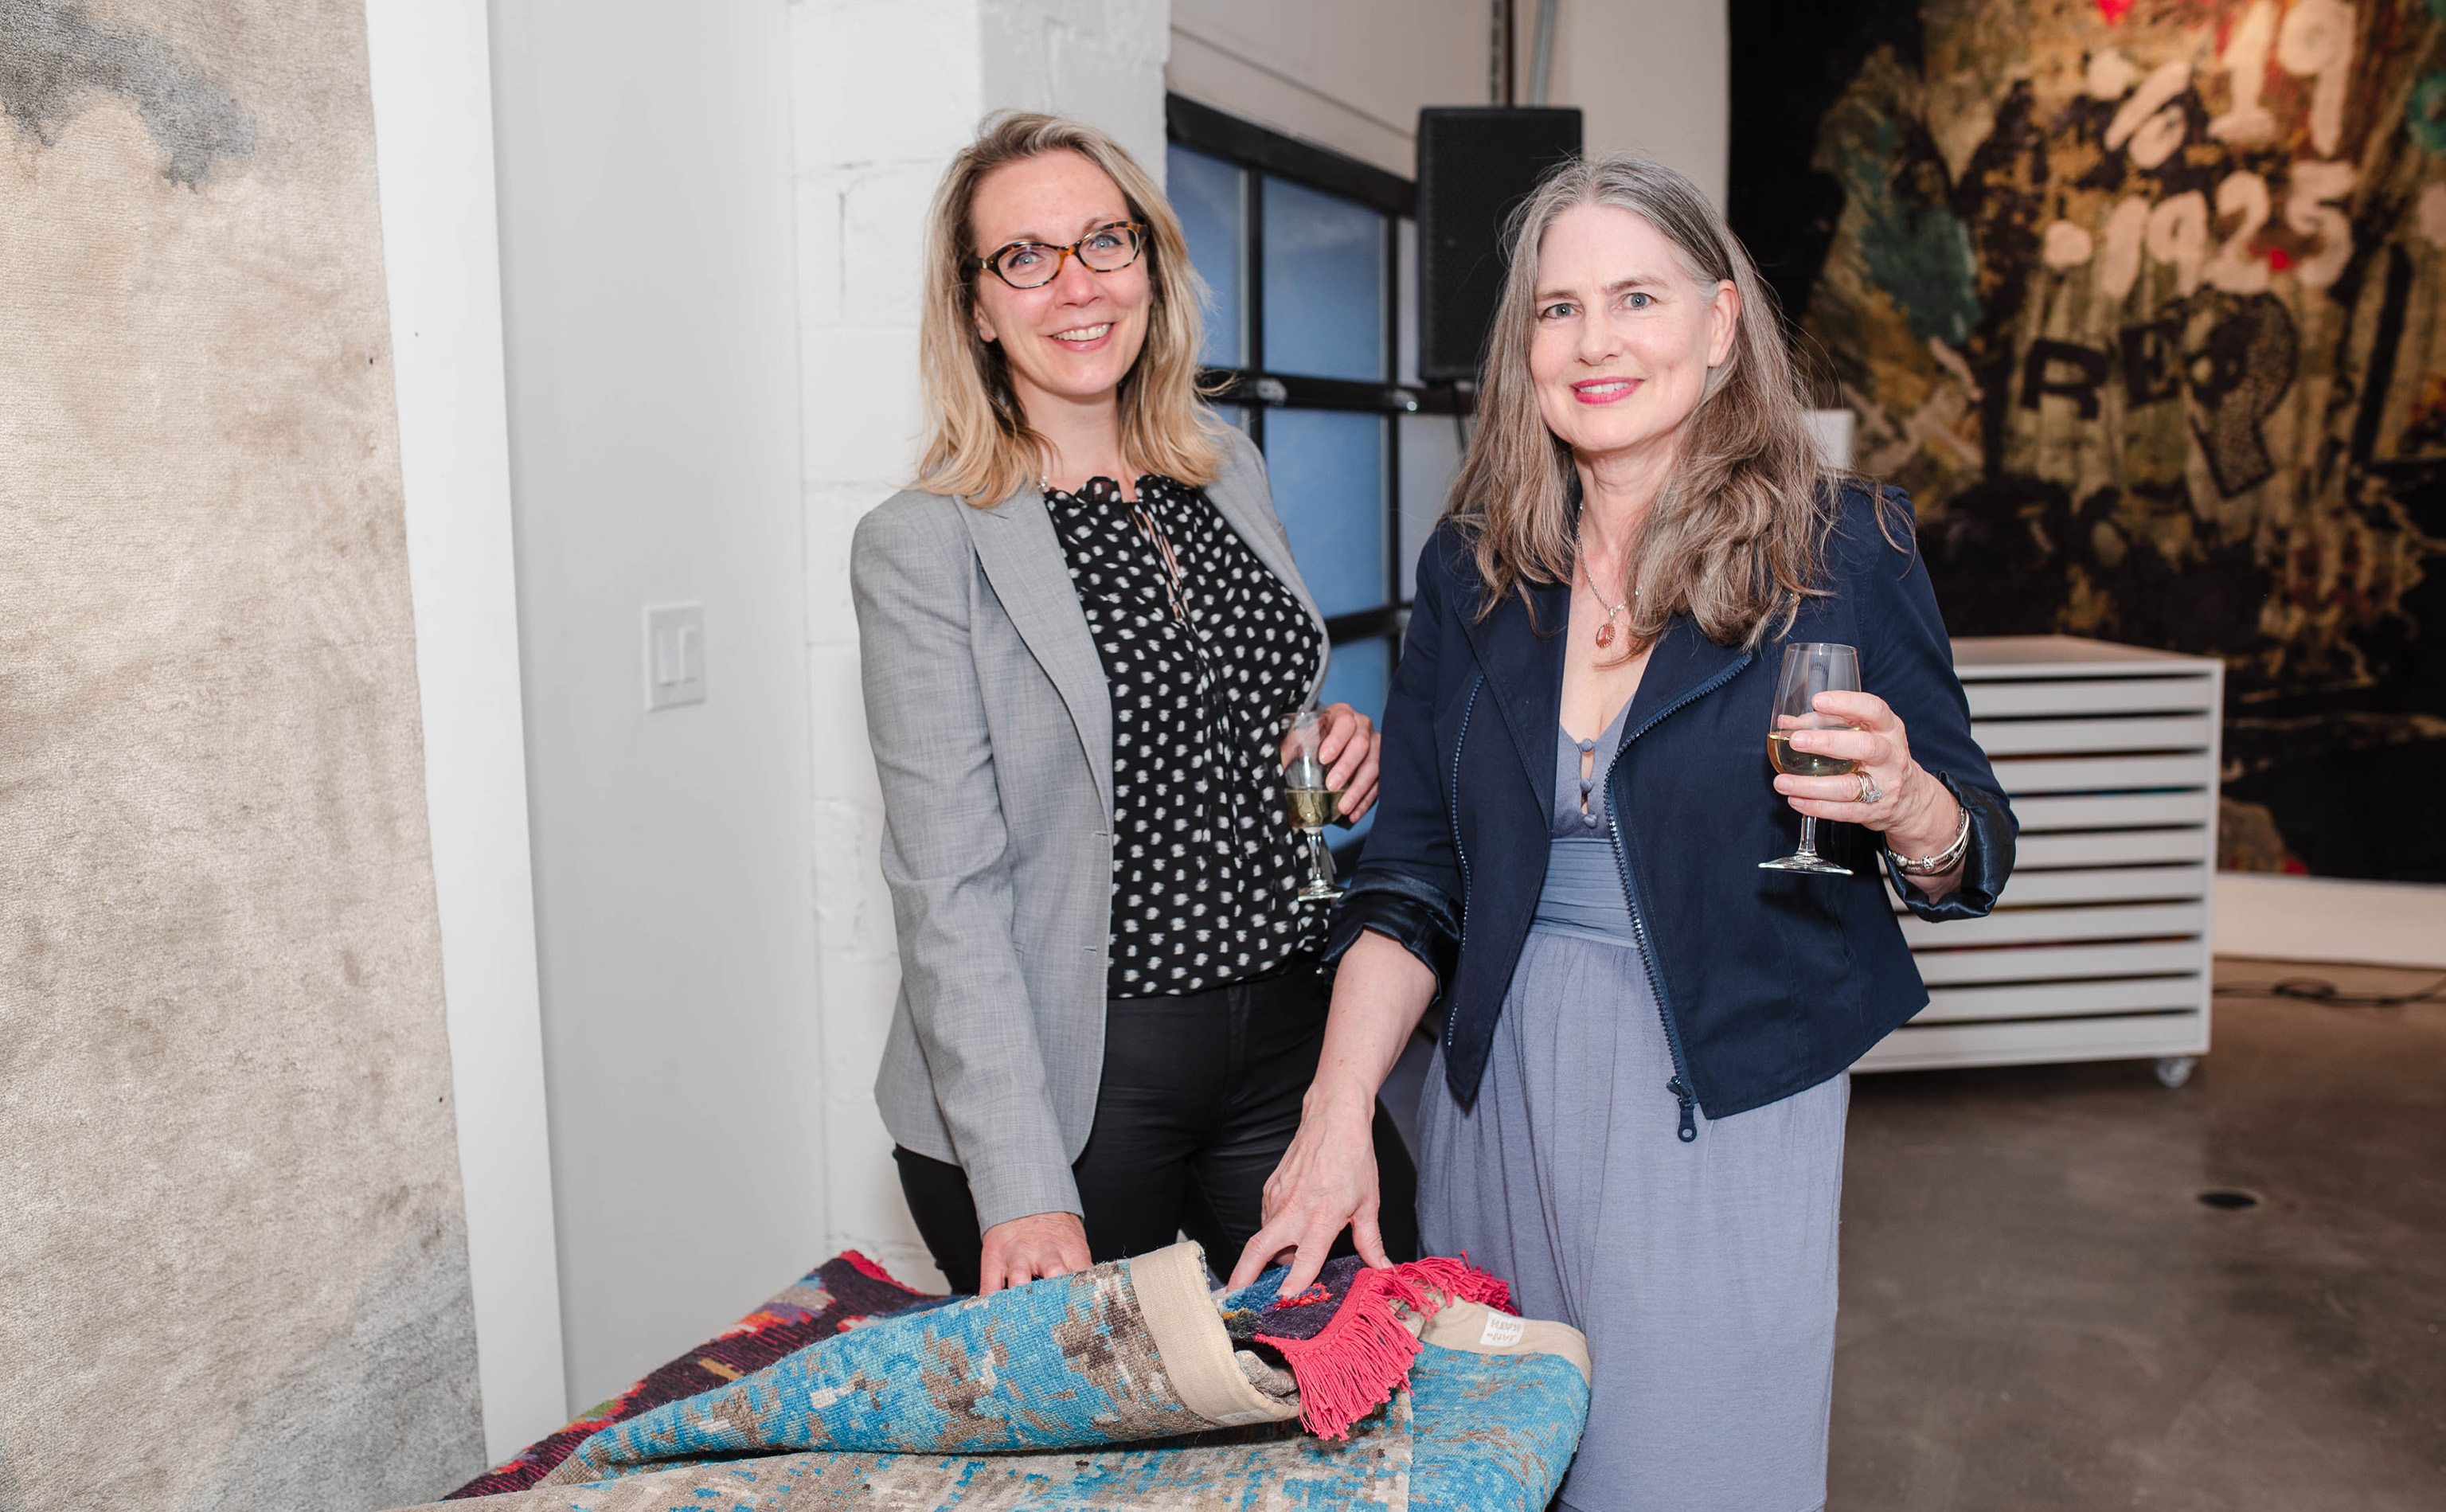 Unidentified women shown browsing carpets and enjoying libations during the opening of Finlay and Kath's new Jan Kath Toronto showroom on Thursday, 10 May 2018. | Image courtesy of Finlay and Kath.